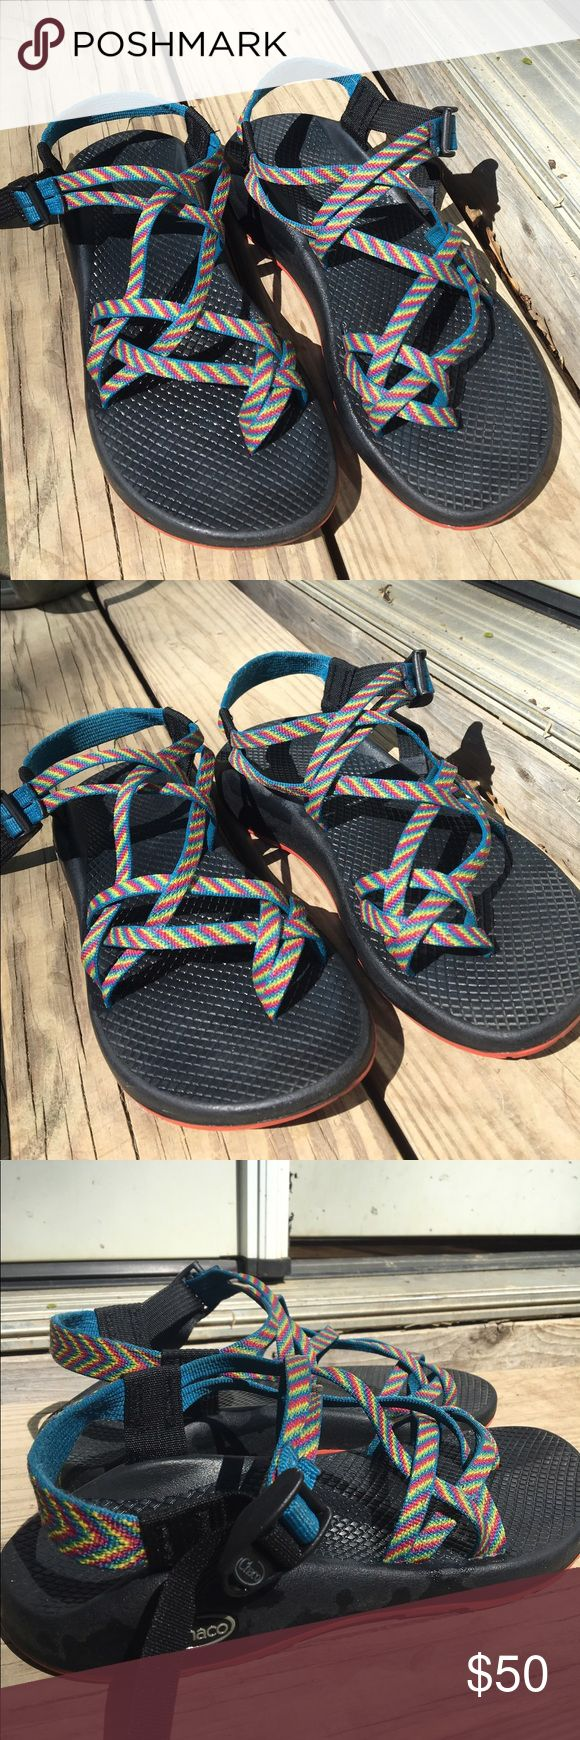 Chaco Women's Sandal-Rainbow They are a size 9 in women's, I have recently bought a new pair so I wanted to rehome these. They are wet, because I had just washed them. The previous purchaser cancelled the order, so they are still for sale :) They do not smell and fit true to size. The lowest I will take is $41. Chaco Shoes Sandals